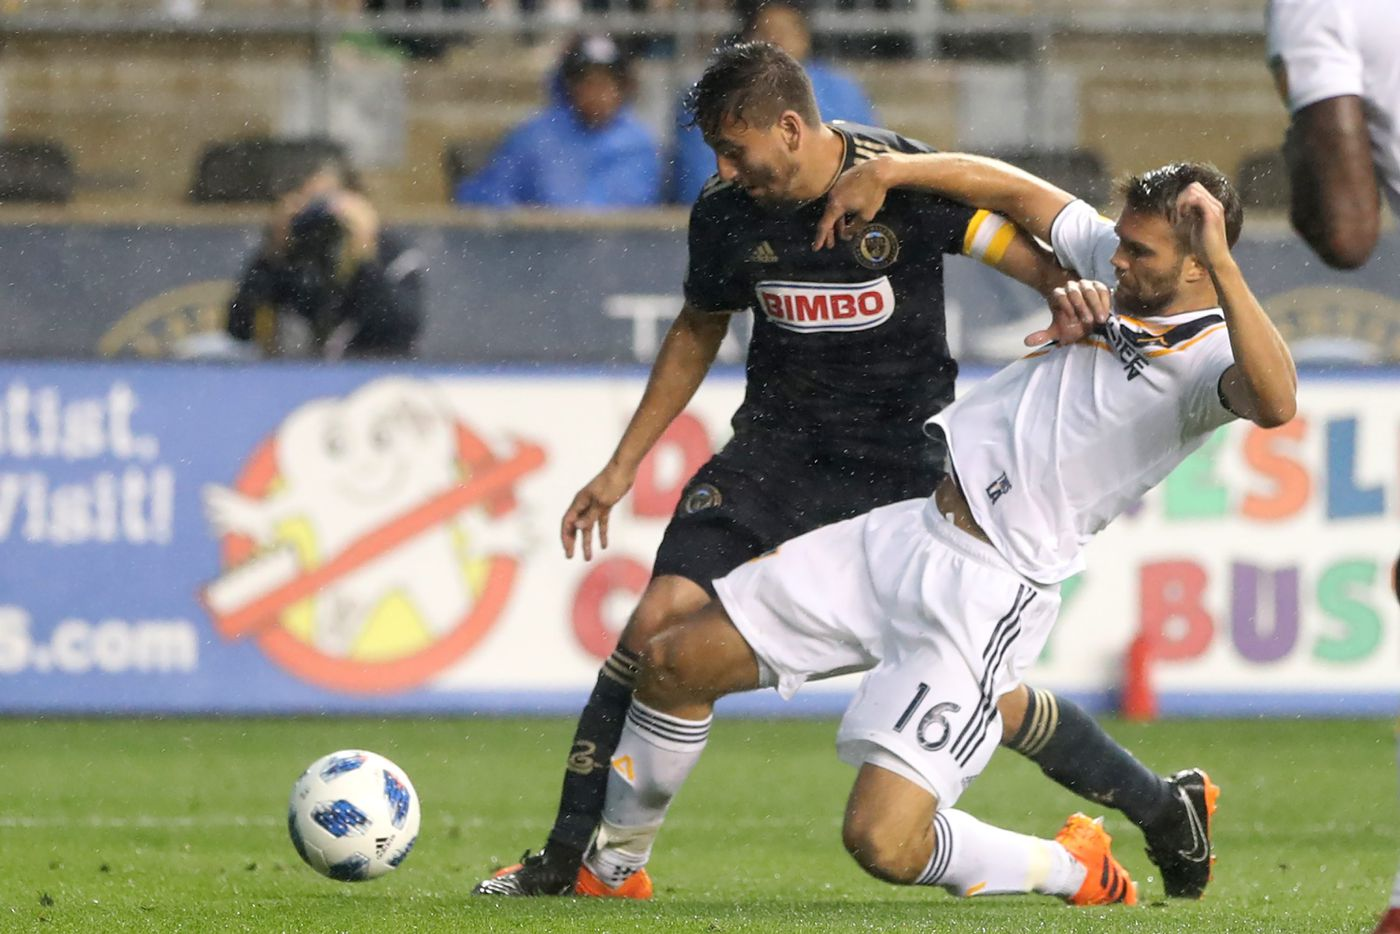 Union prepare for penalty kicks if needed in U.S. Open Cup semifinal against Chicago Fire